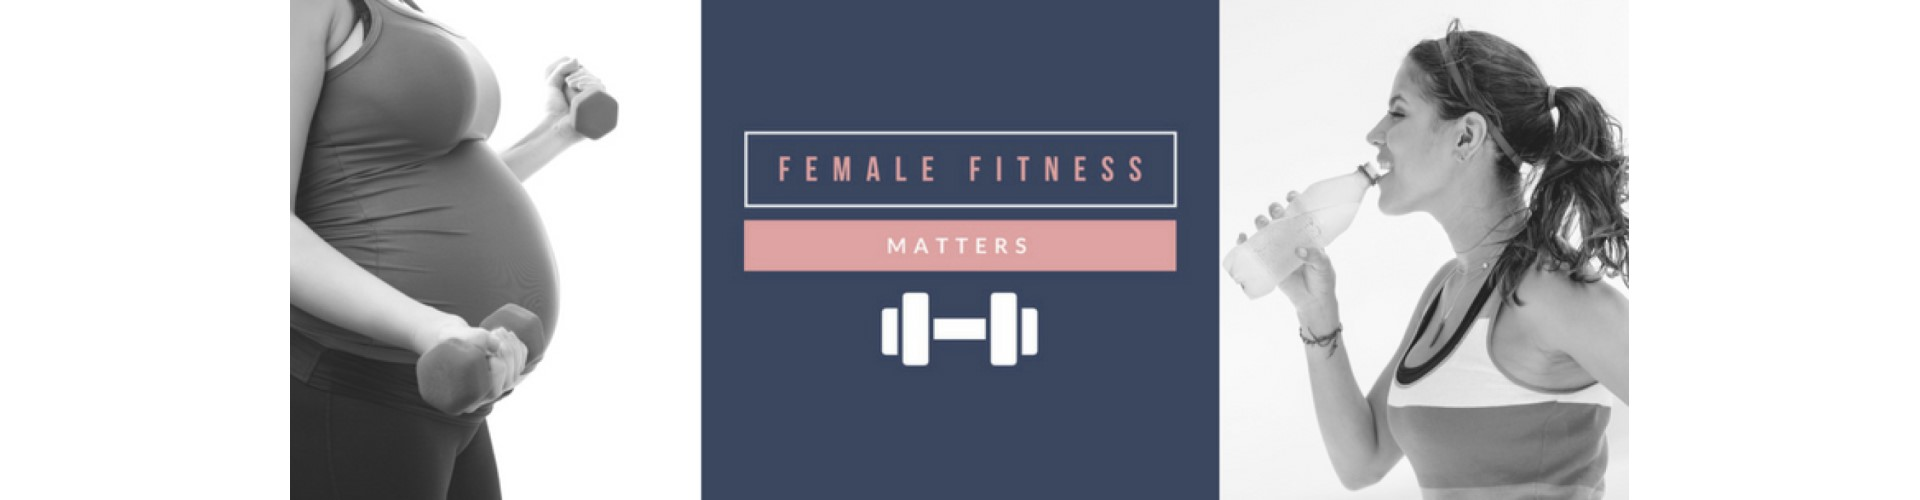 FEMALE FITNESS MATTERS background image